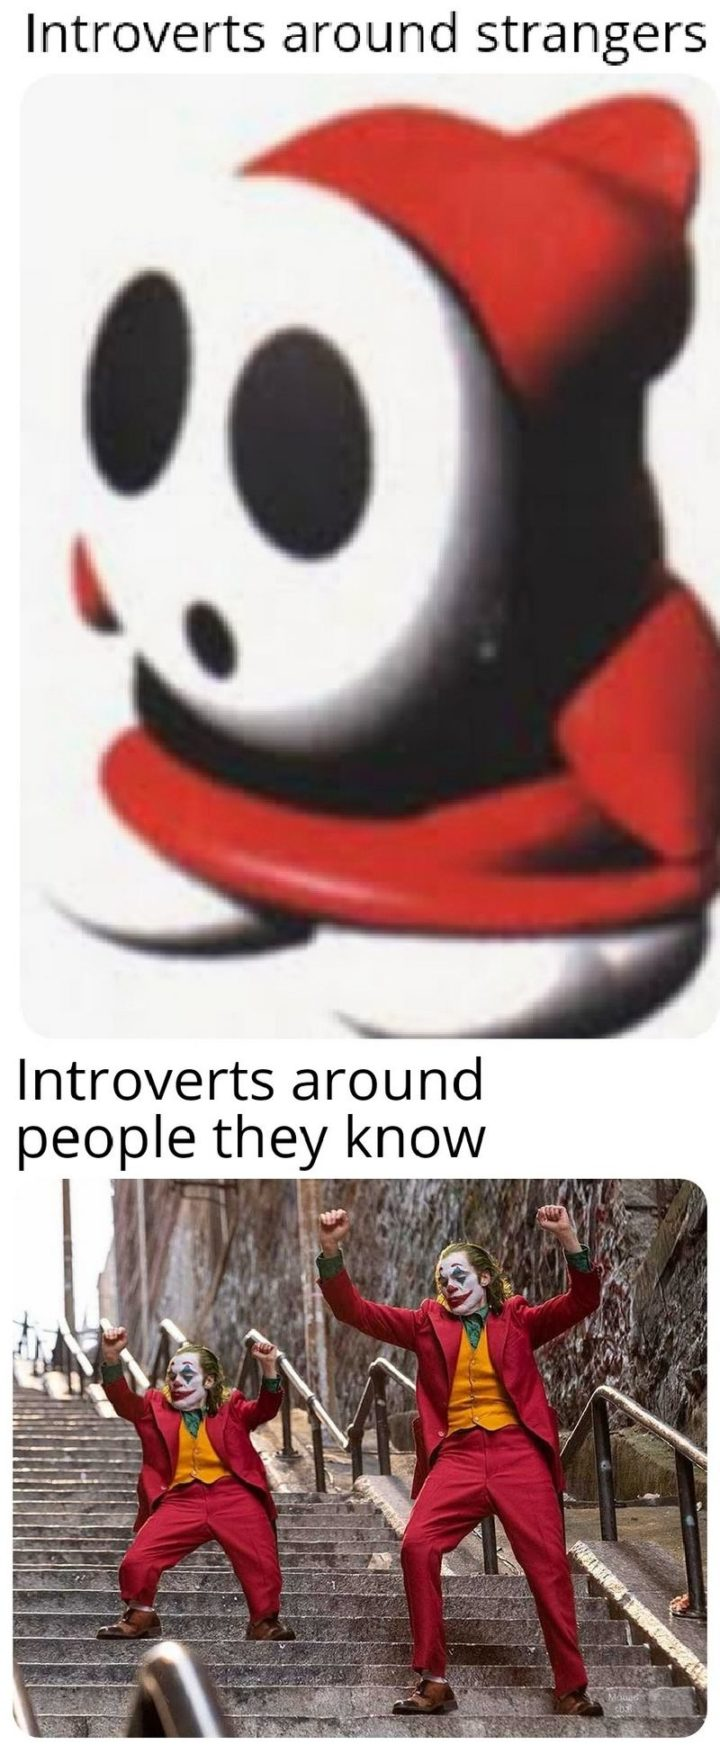 """75 Introvert Memes - """"Introverts around strangers vs Introverts around people they know."""""""